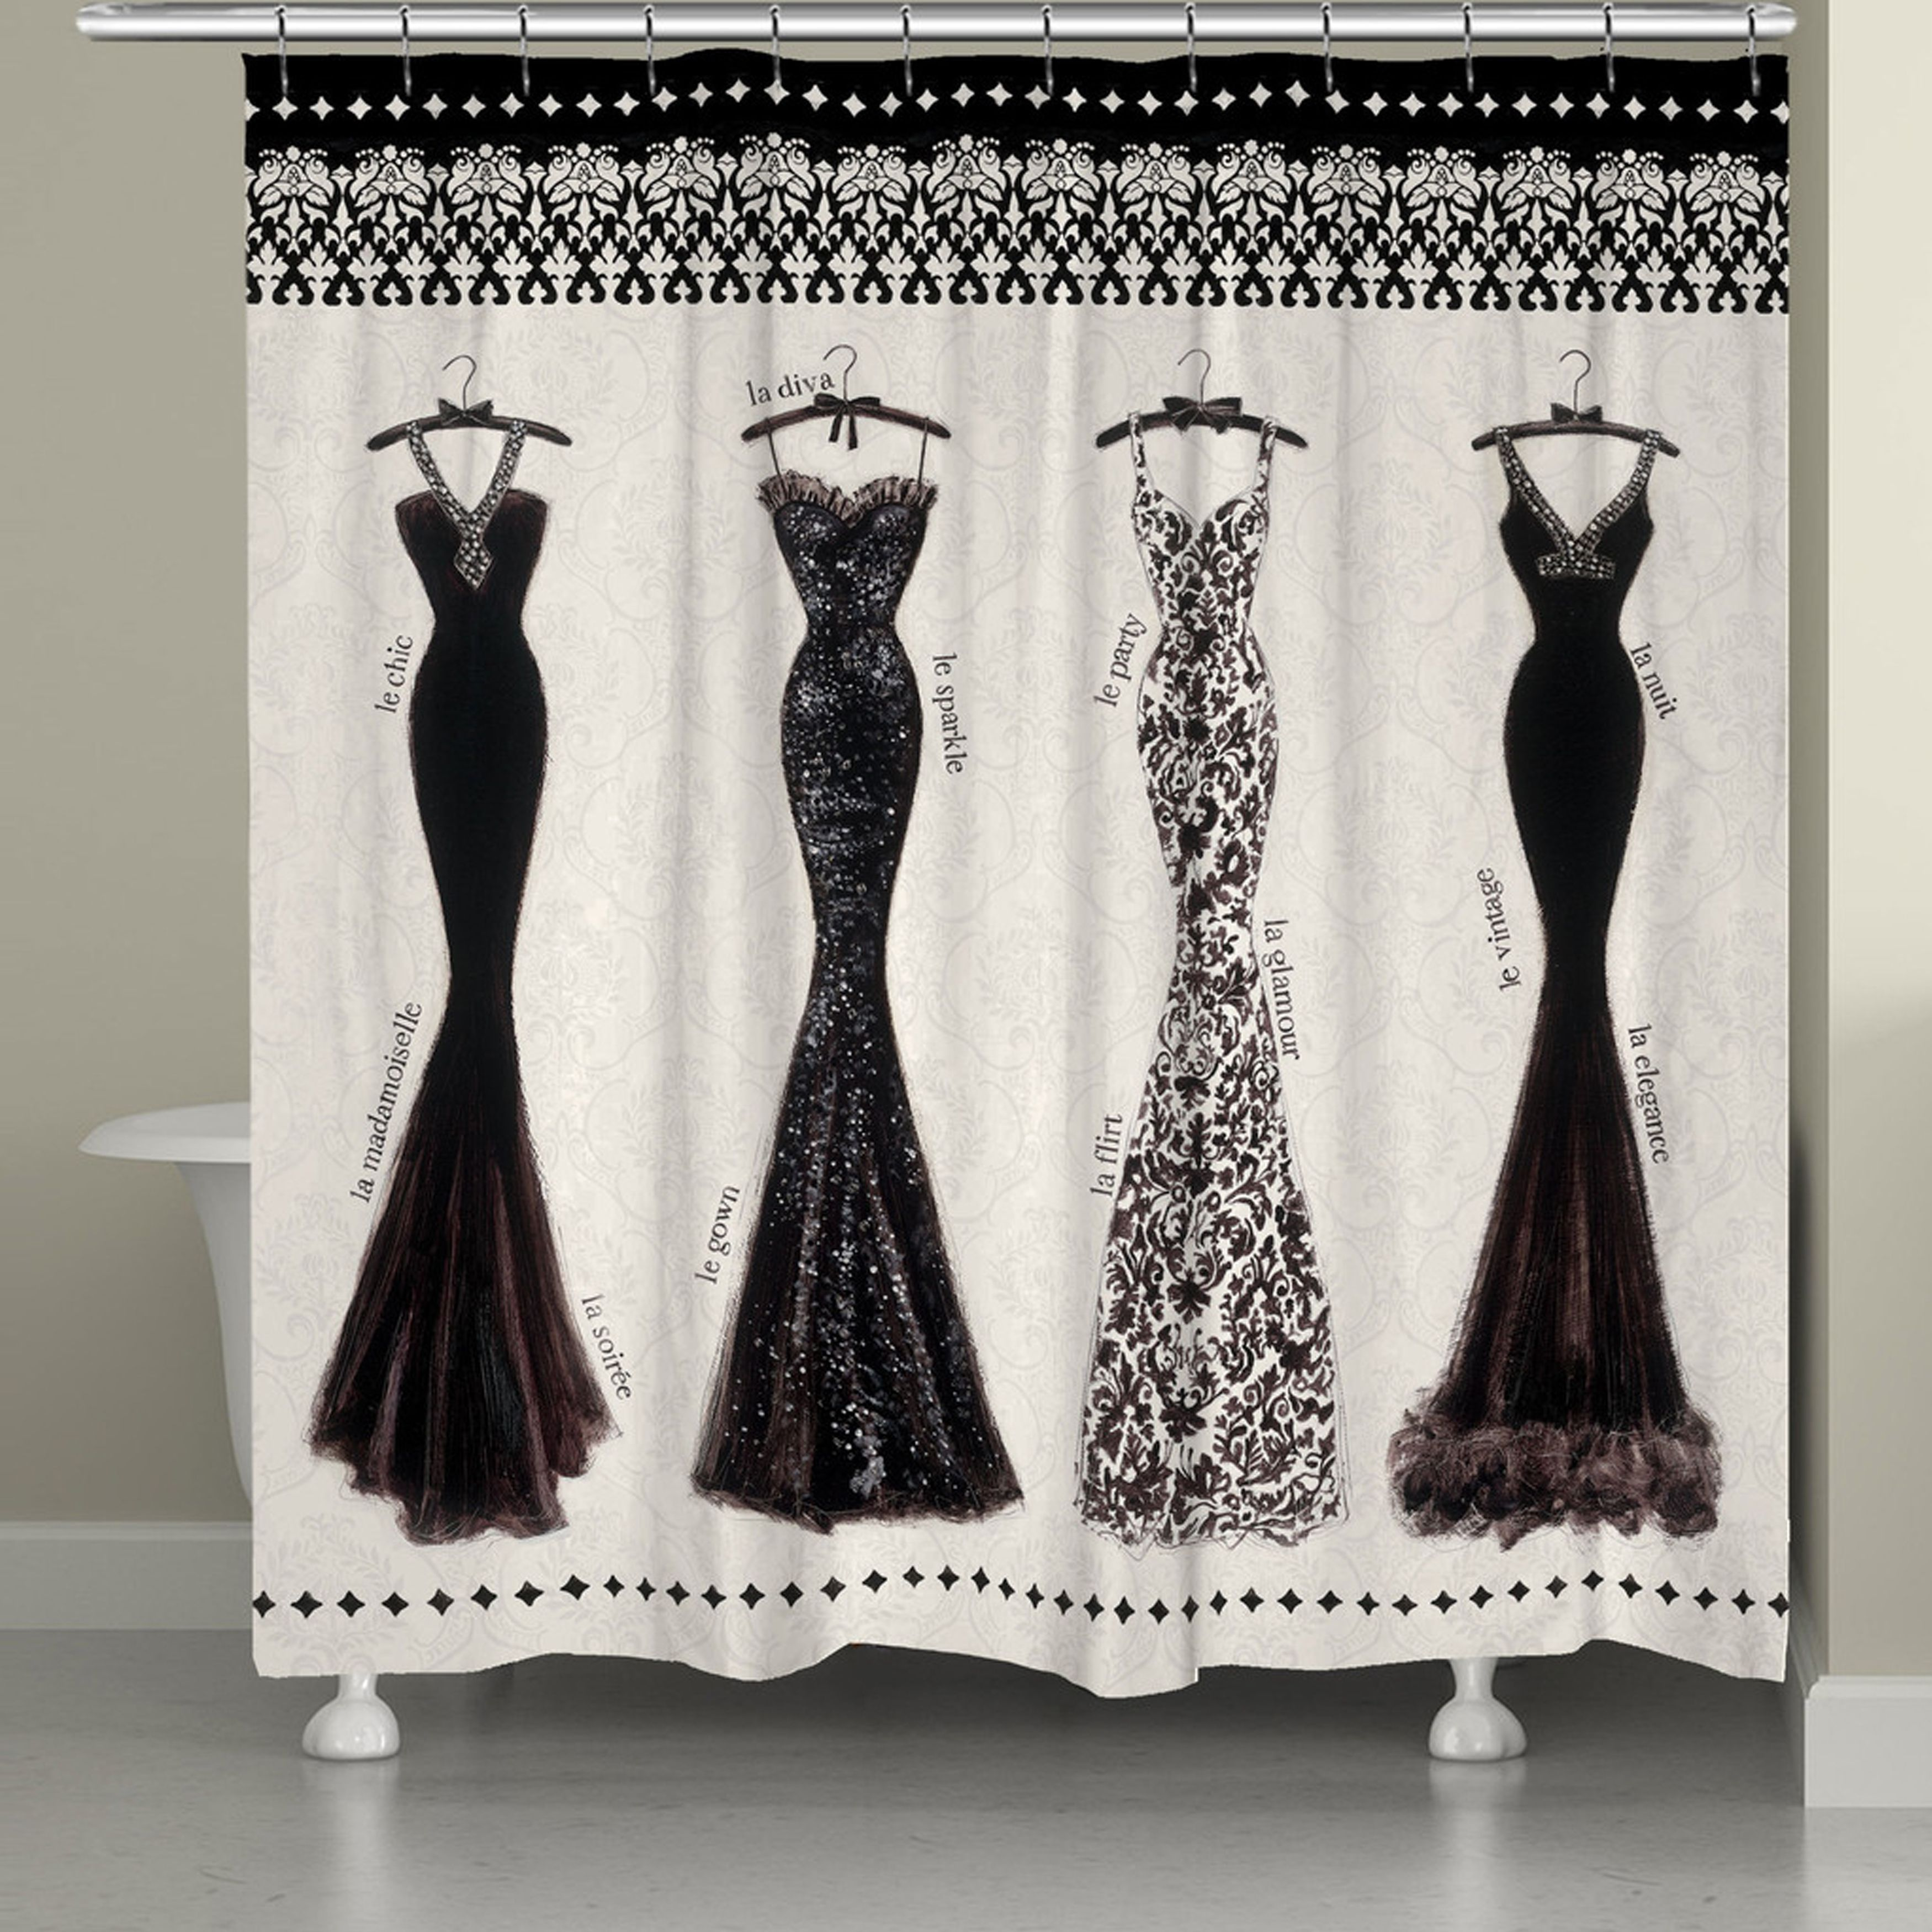 This off white shower curtains features elegant evening gowns with a